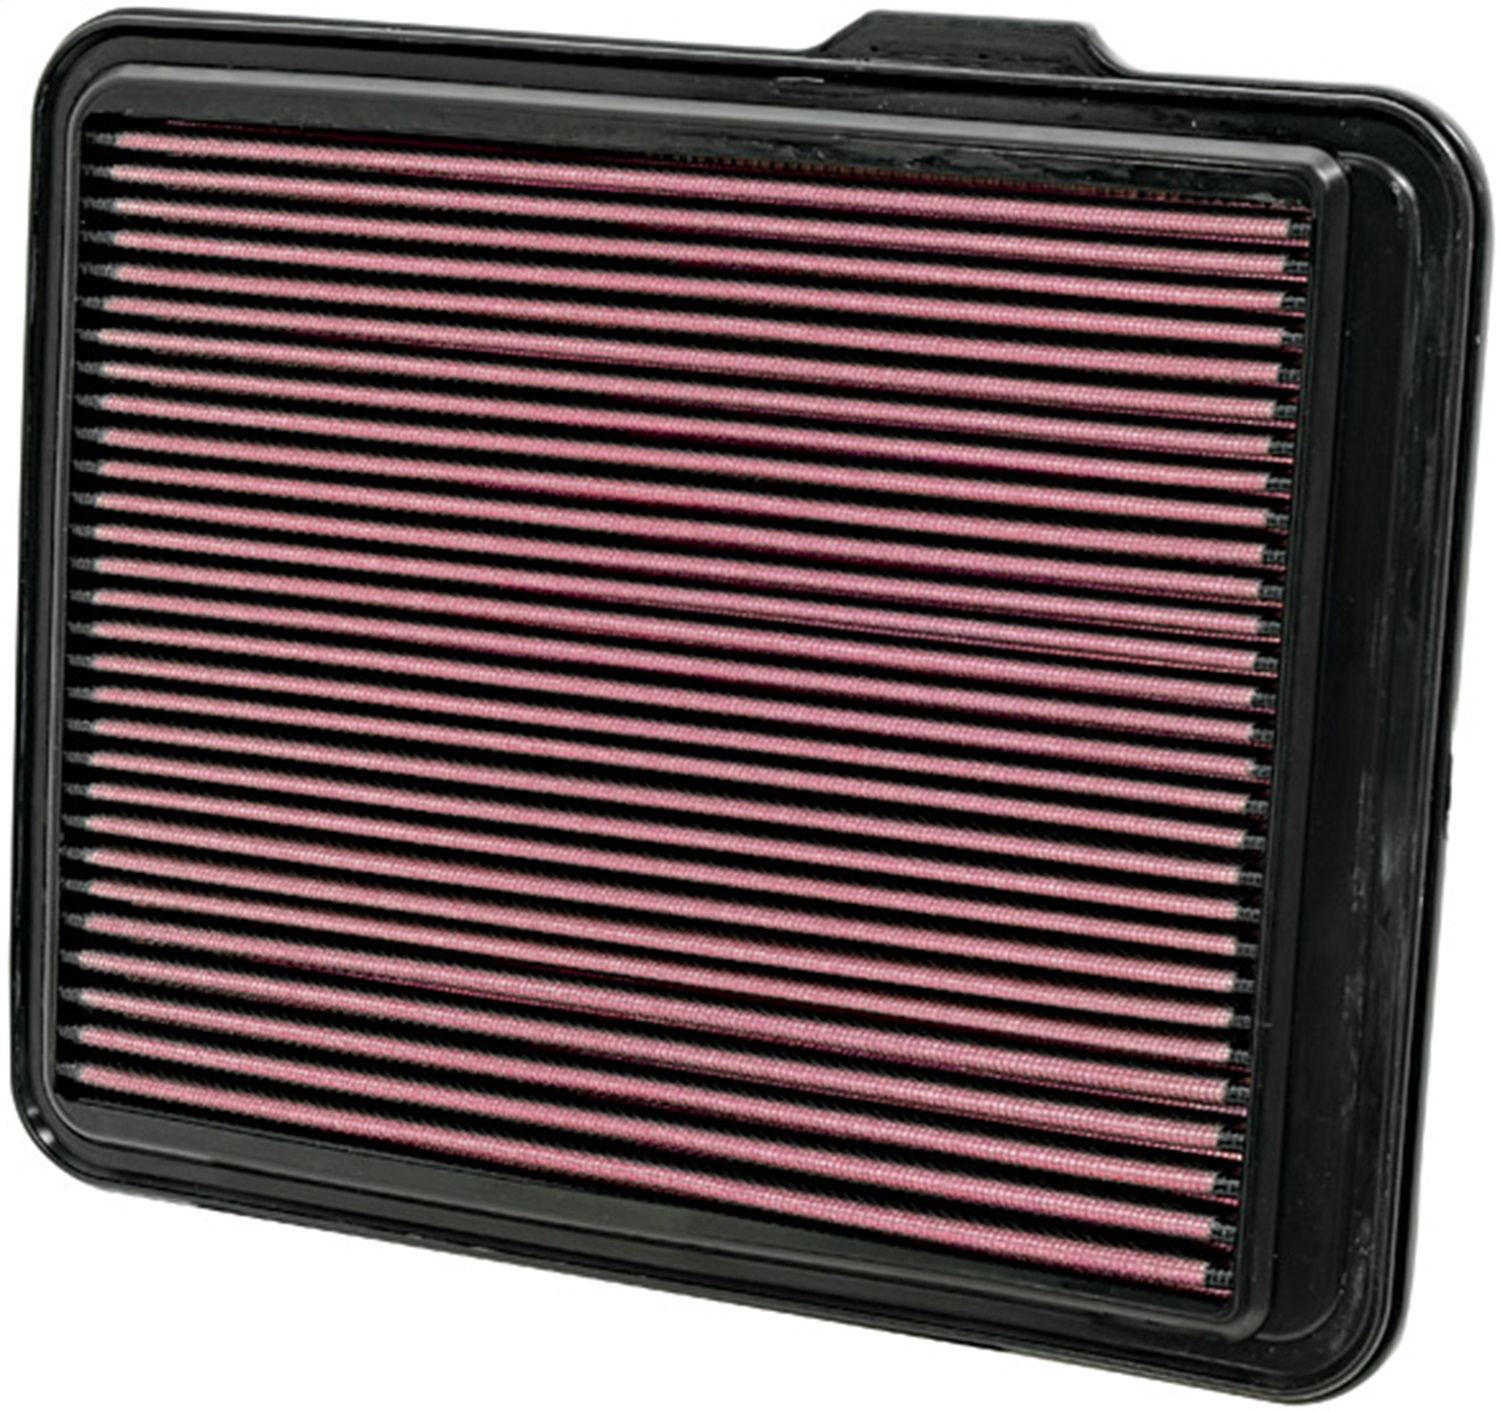 K&N Filters 33-2408 Air Filter Fits 08-12 Canyon Colorado H3 H3T 33-2408